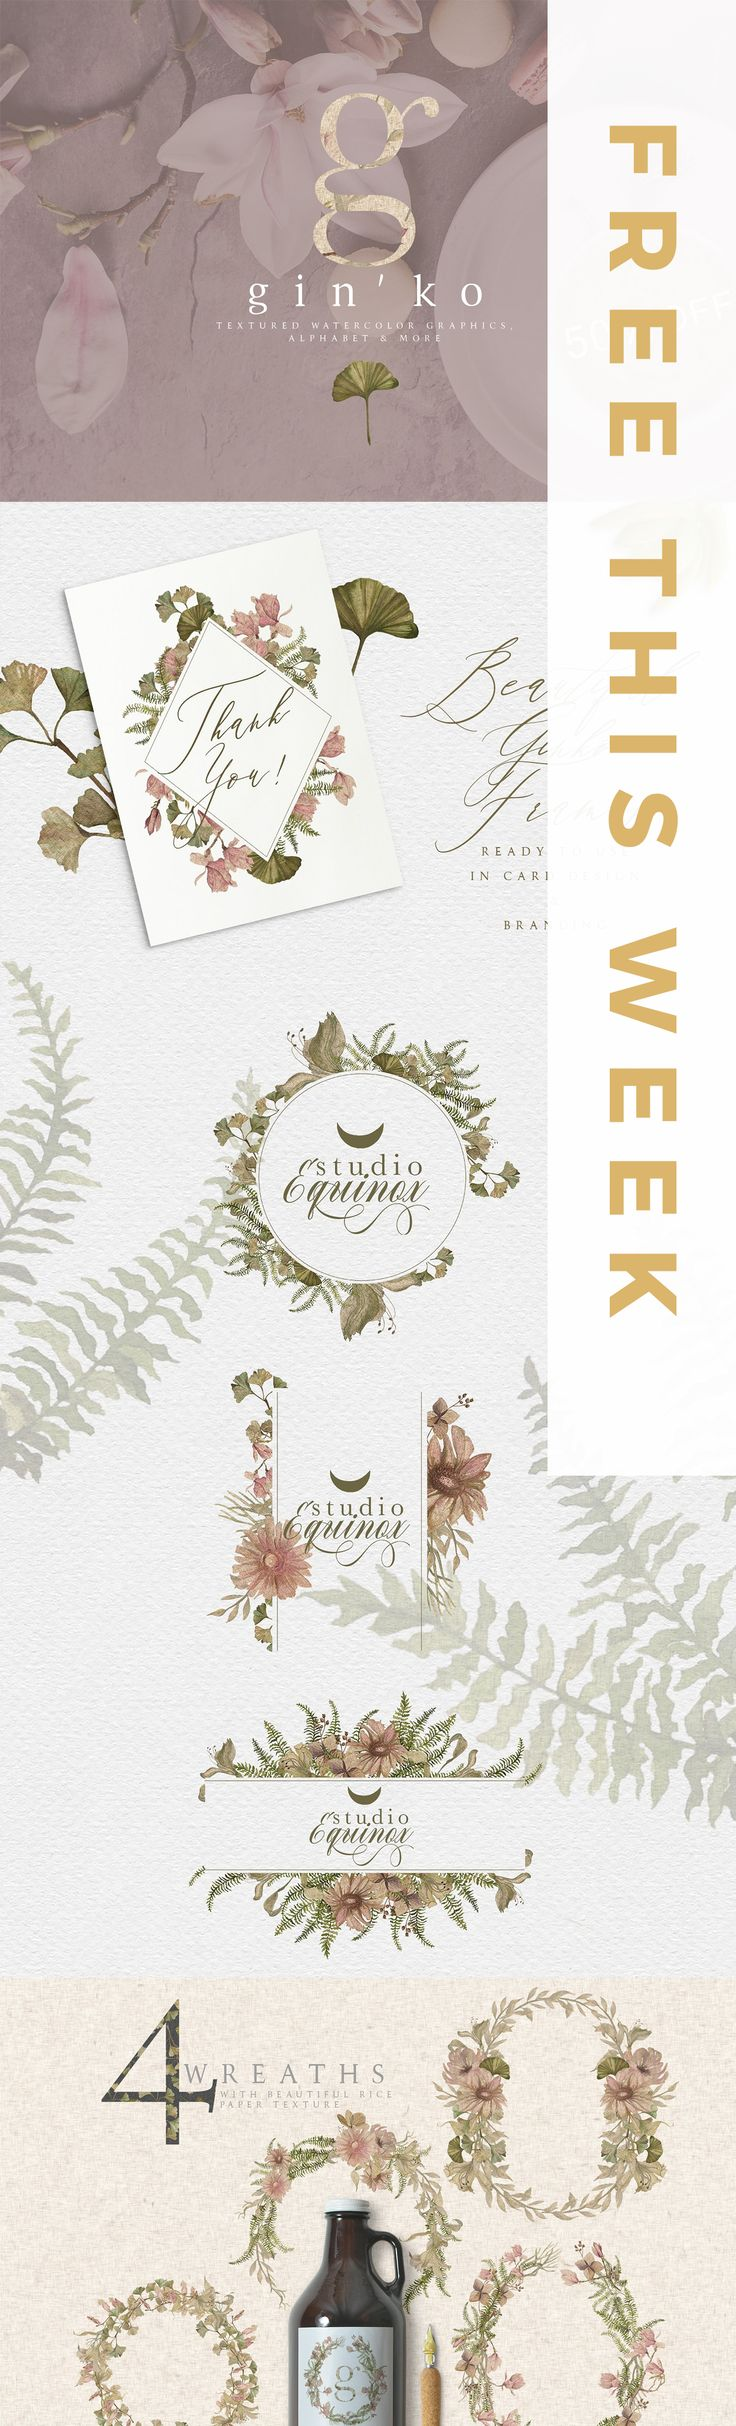 Digital resources, fonts, graphics, add-ons, templates and more for creative people! Find this Free for this week 05/03/2018 - 11/03/2018 on Creative Market.